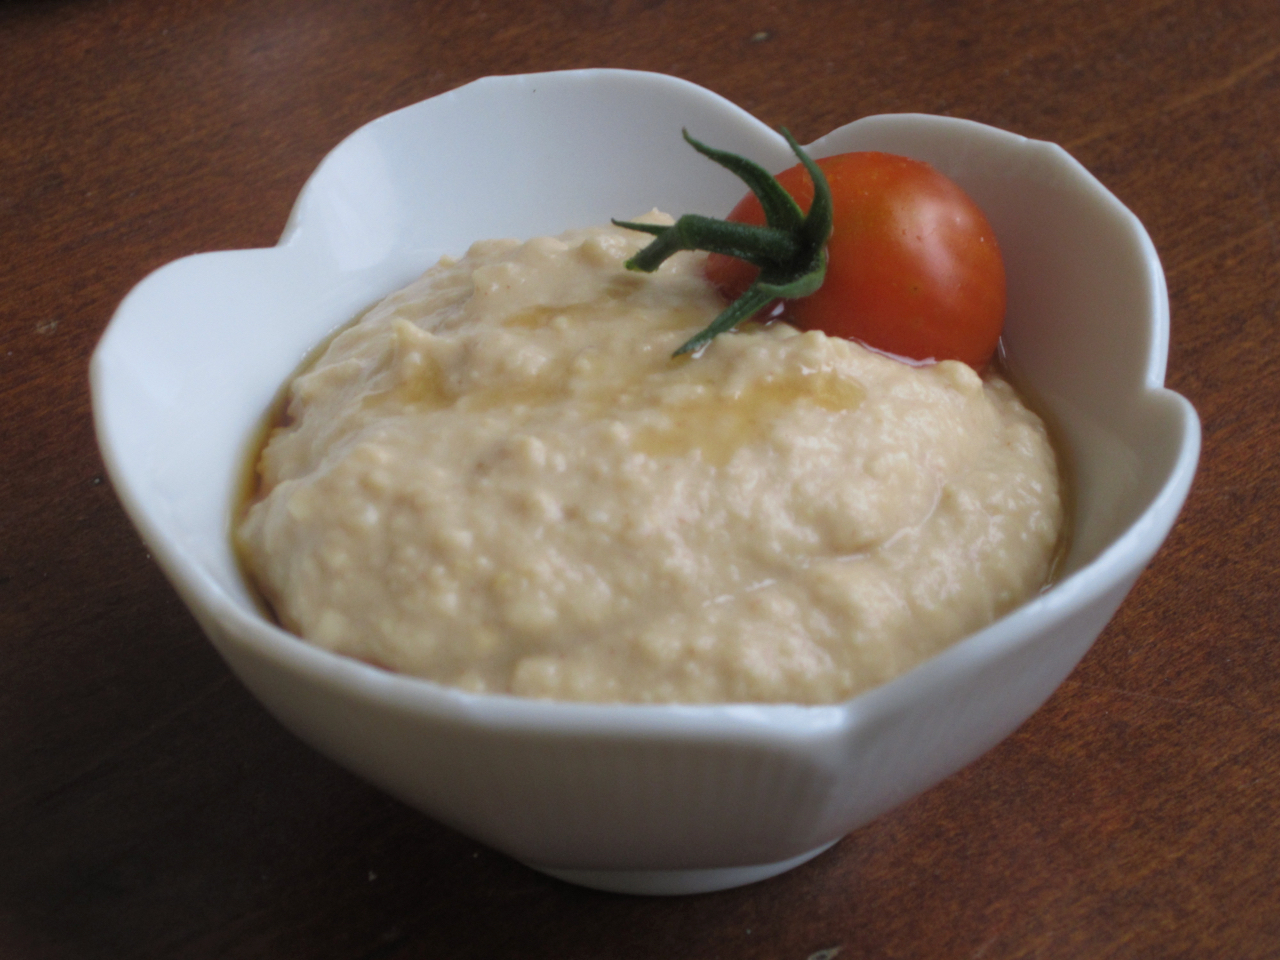 There are many good low-FODMAP sources of fiber that people with diabetes can eat. Delicious lower-FODMAP hummus starts with canned, drained chick peas, which are lower in FODMAPs than those used to make commercial hummus. Scroll down to try this recipe yourself!